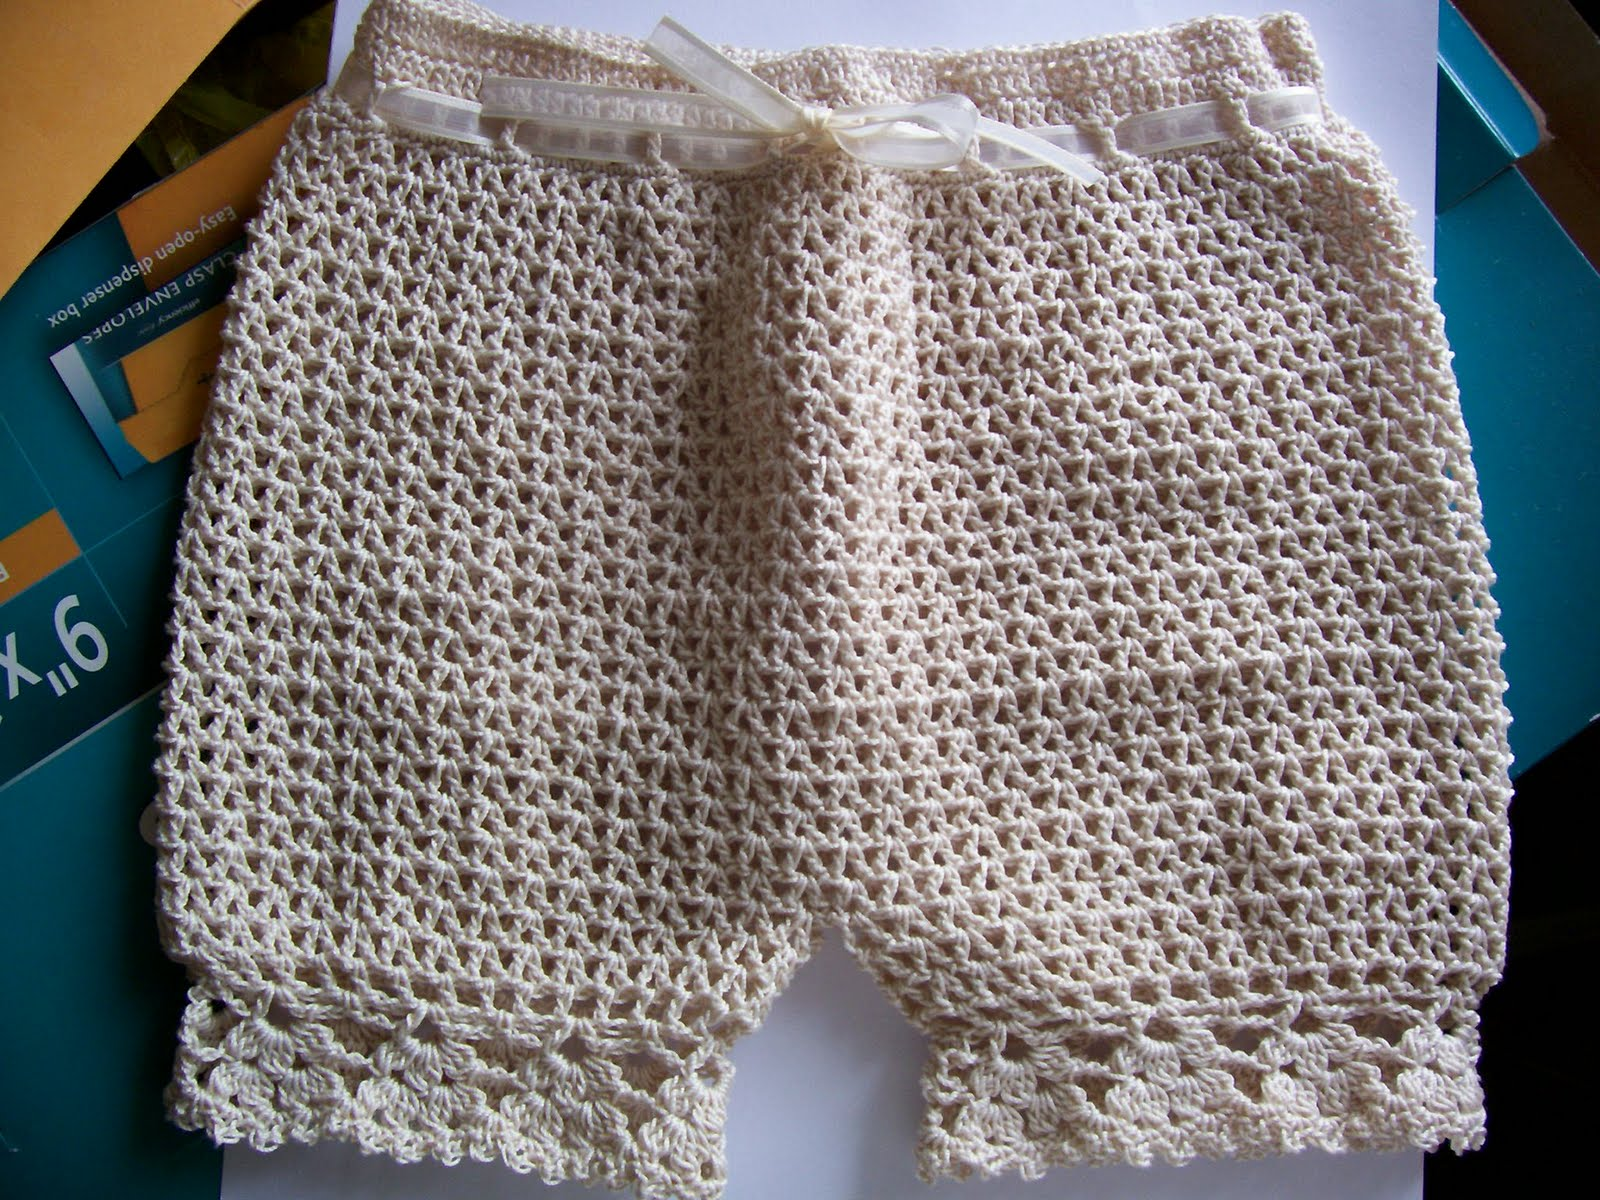 Crocheting Underwear : Crochet Apostle: Crochet Baby Bloomers/Panties